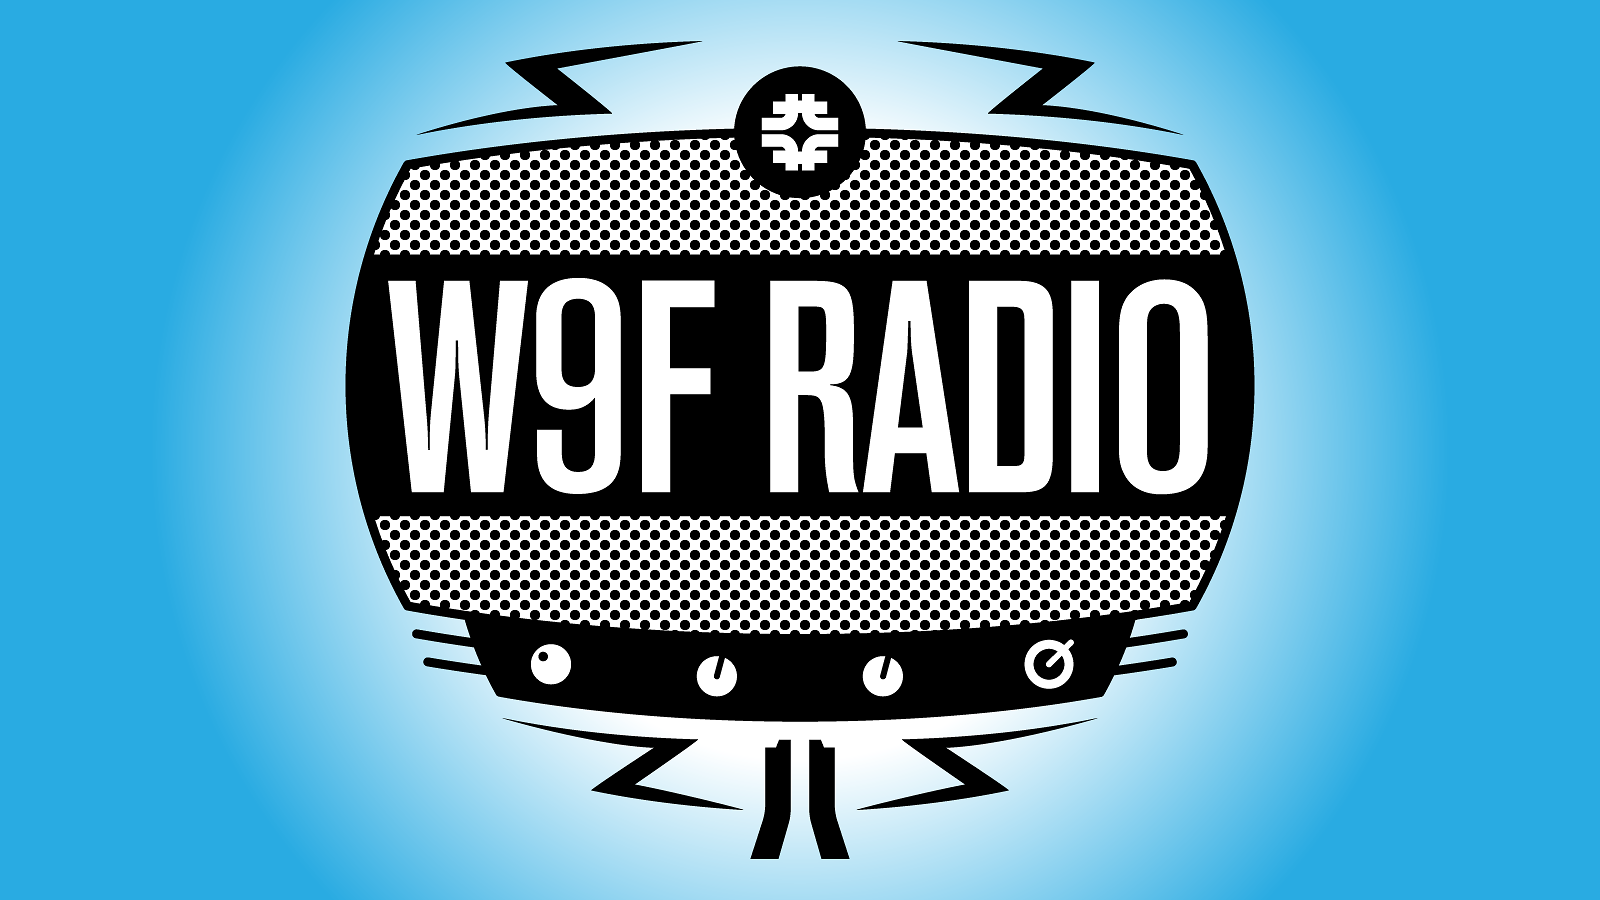 W9F RADIO graphic